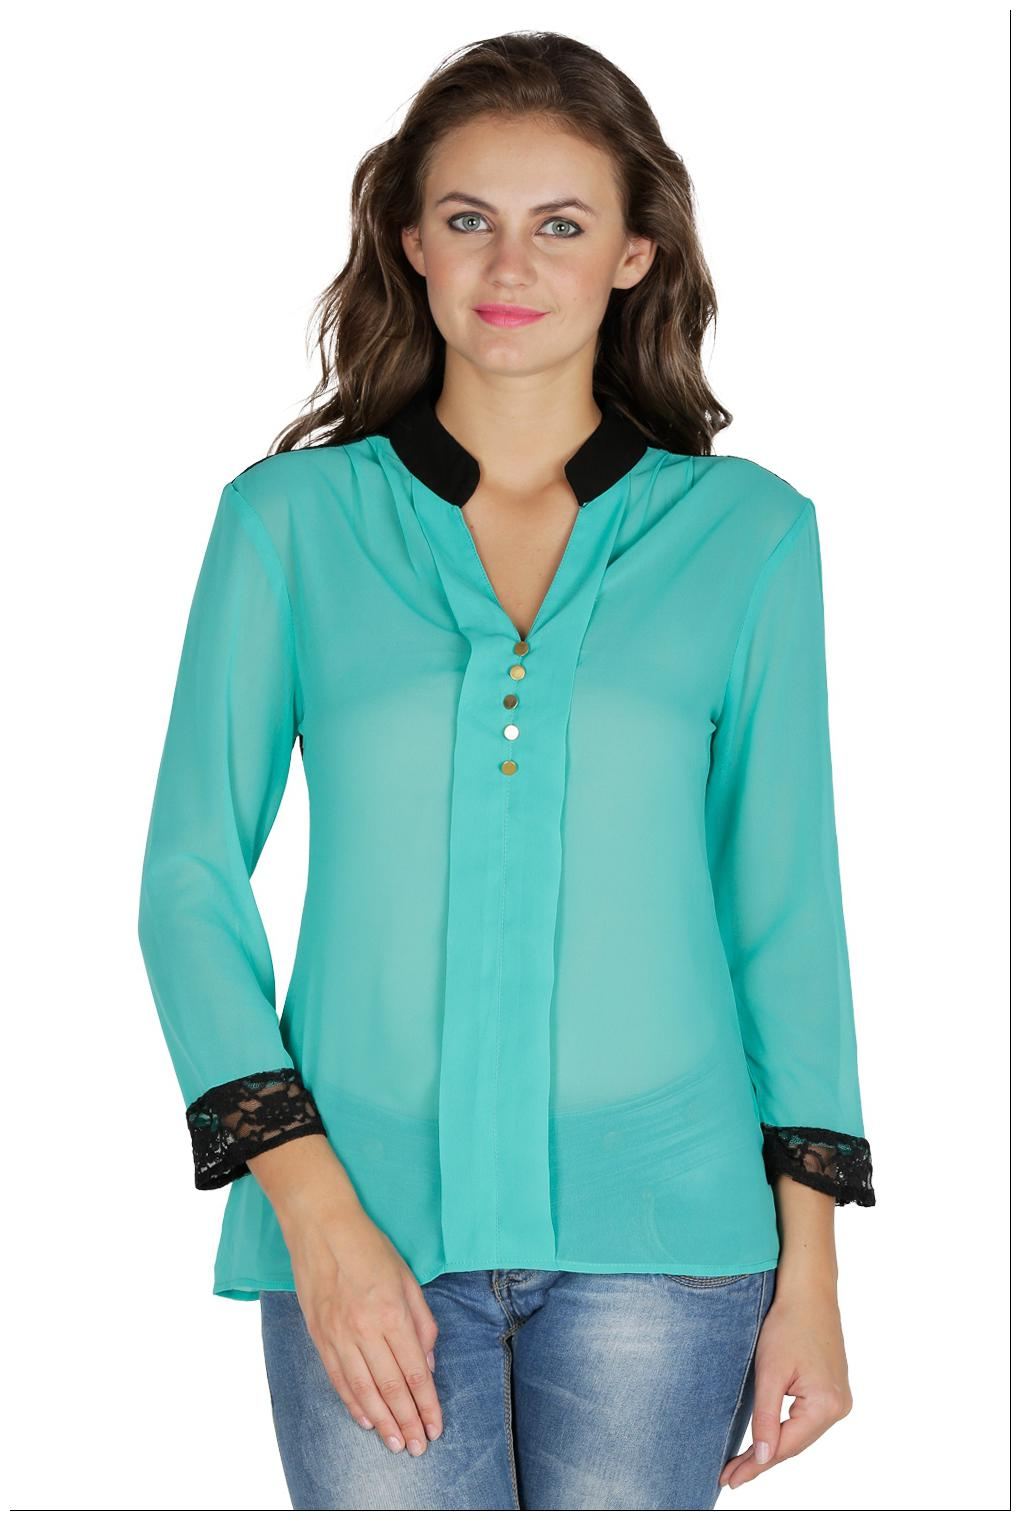 Mayra Green Tops For Women